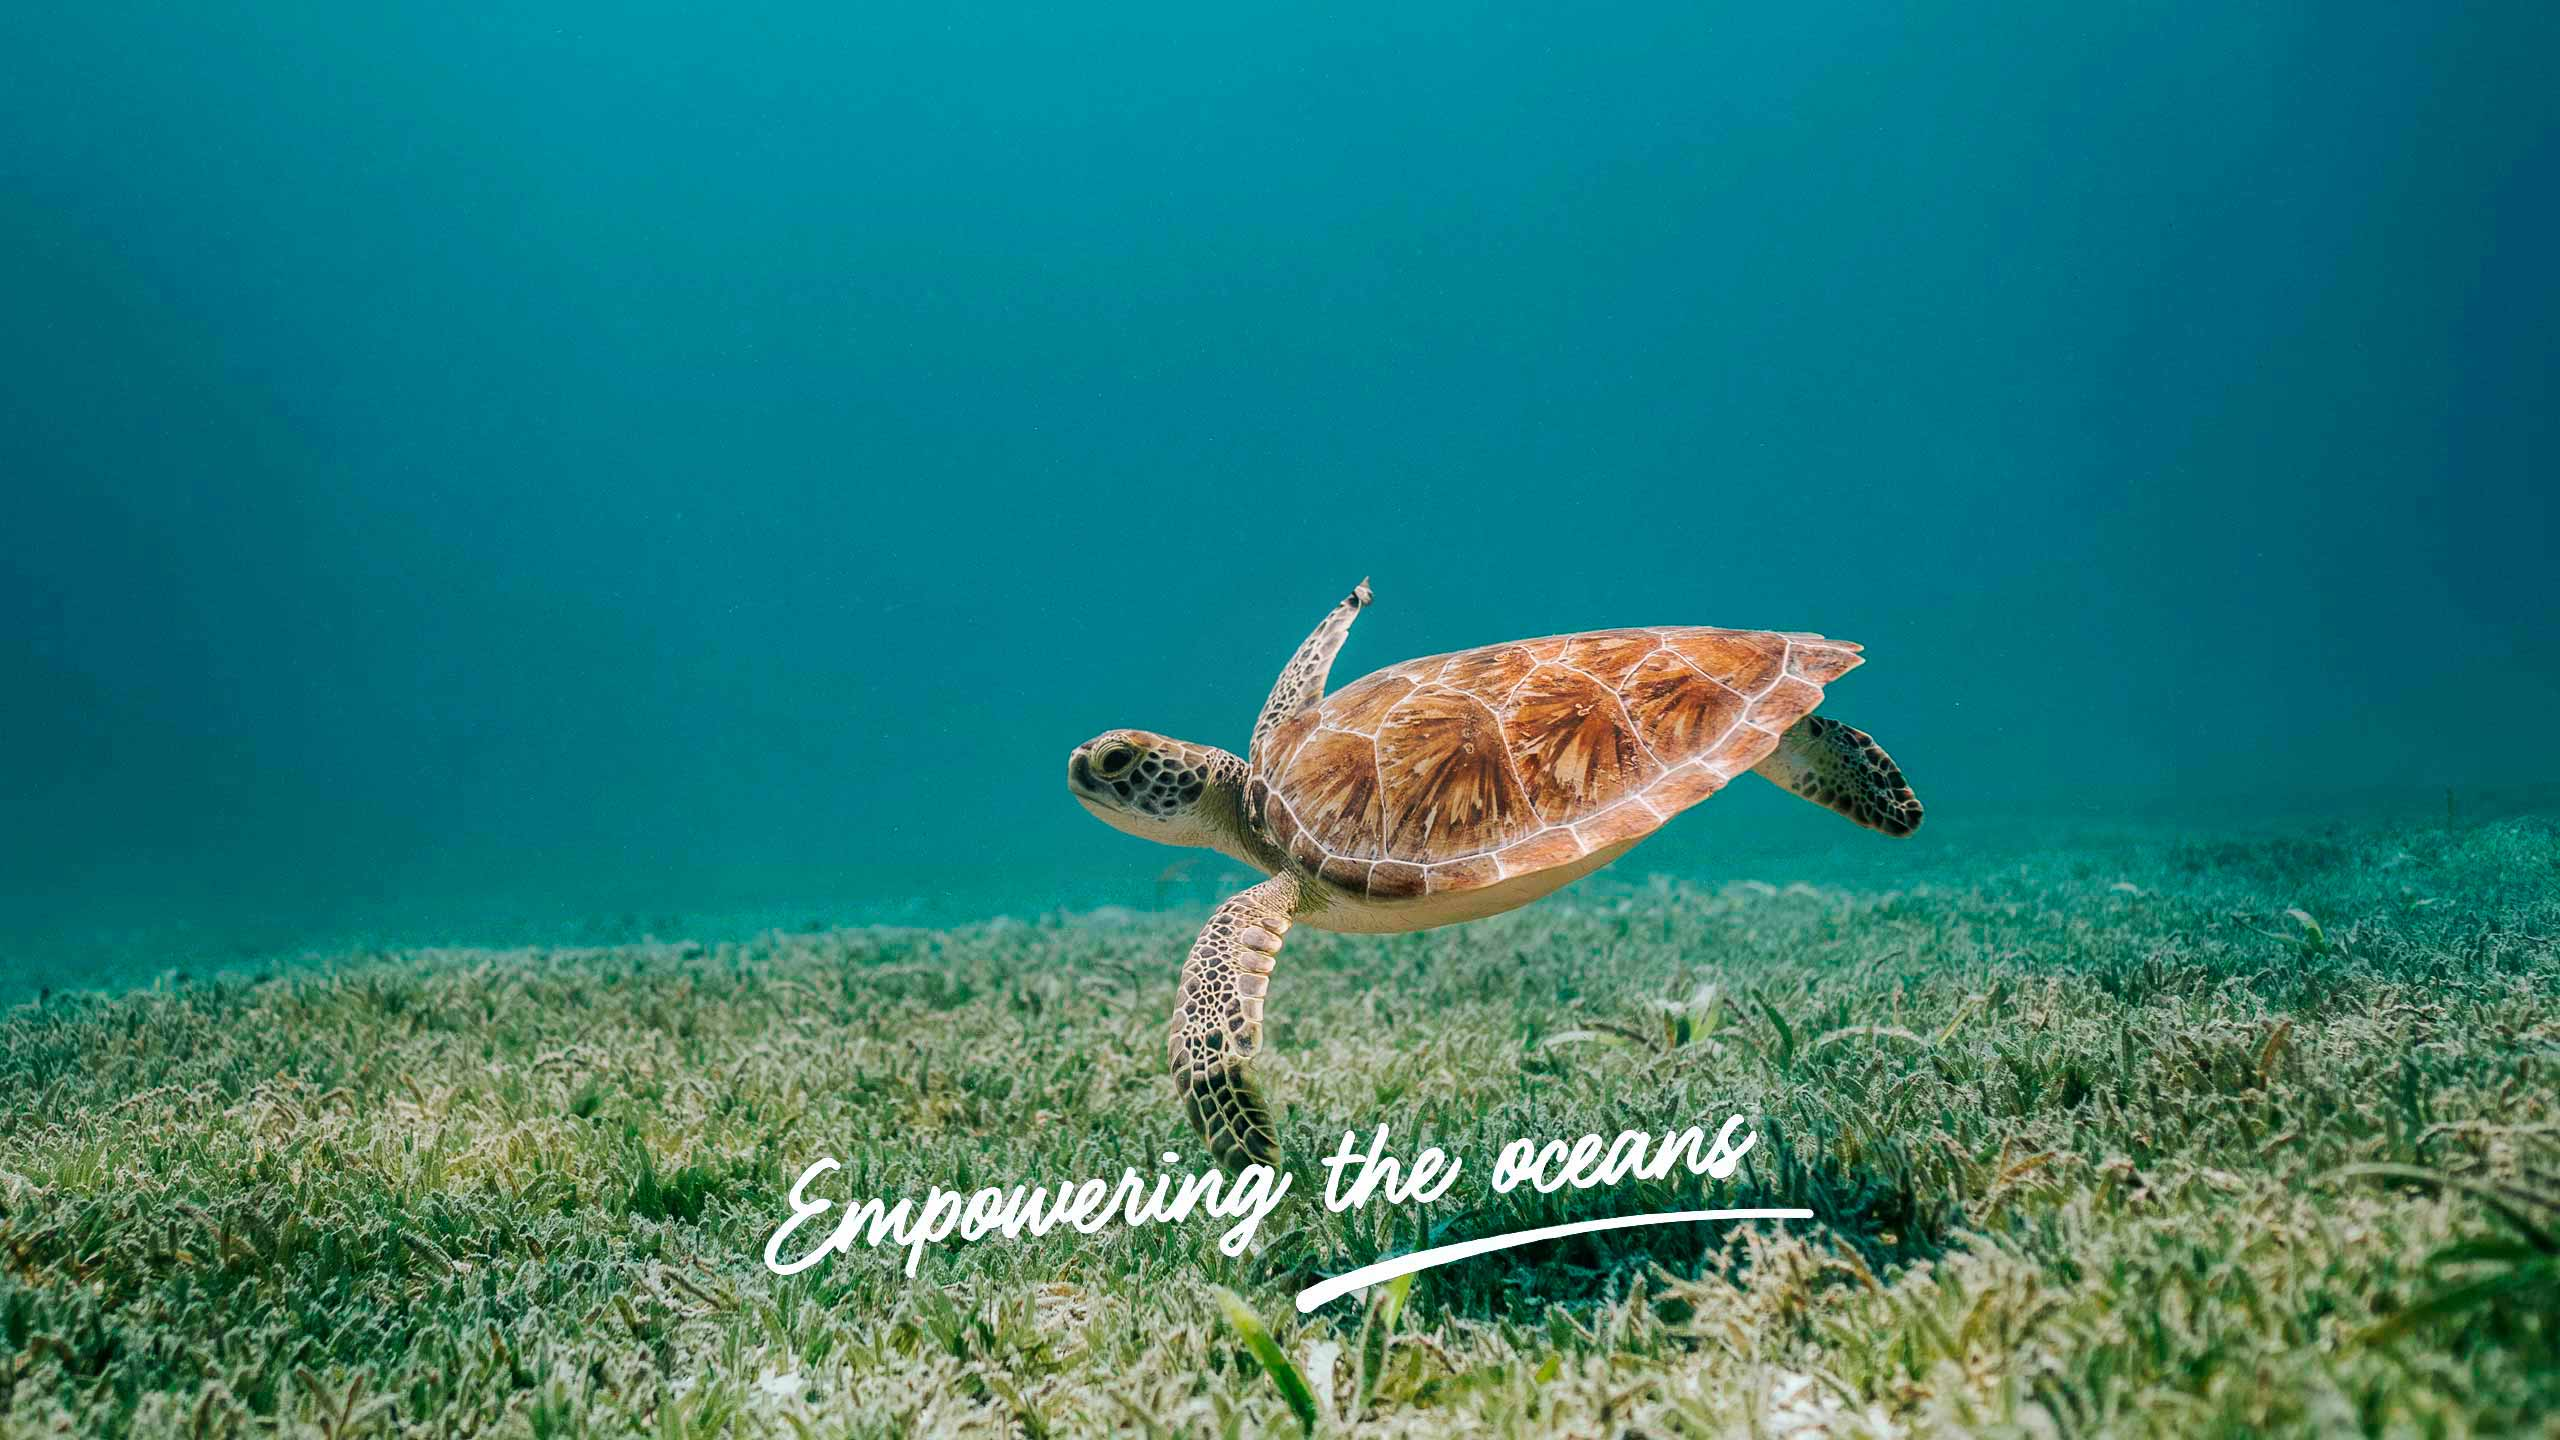 video empowering the oceans